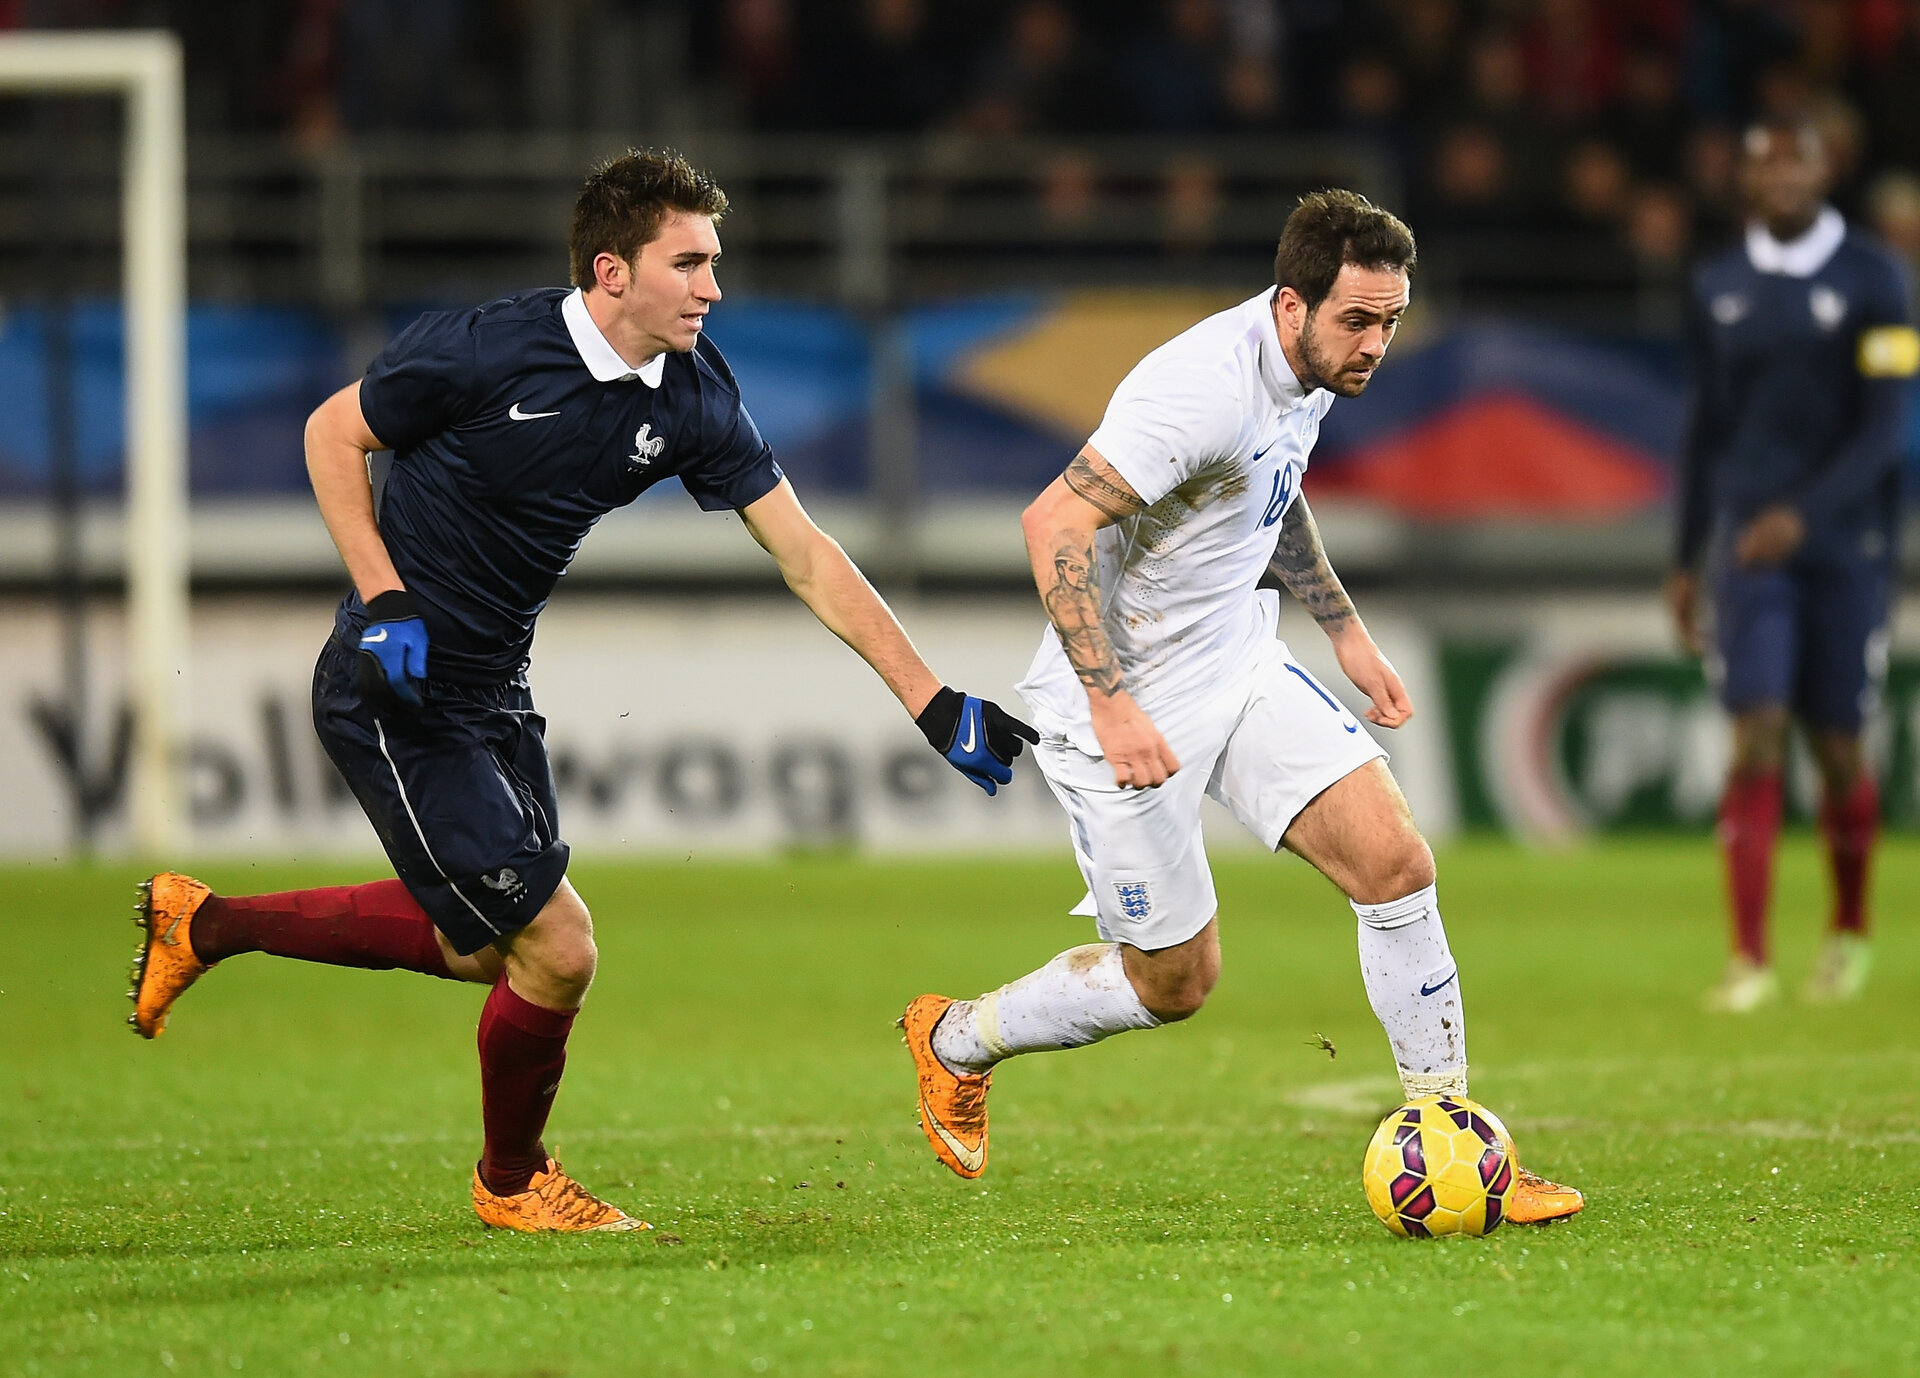 BREST, FRANCE - NOVEMBER 17:  Danny Ings of England gets away from Aymeric Laporte of France during the U21 International Friendly match between France and England at the Stade Francis Le Ble on November 17, 2014 in Brest, France.  (Photo by Christopher Lee/Getty Images)